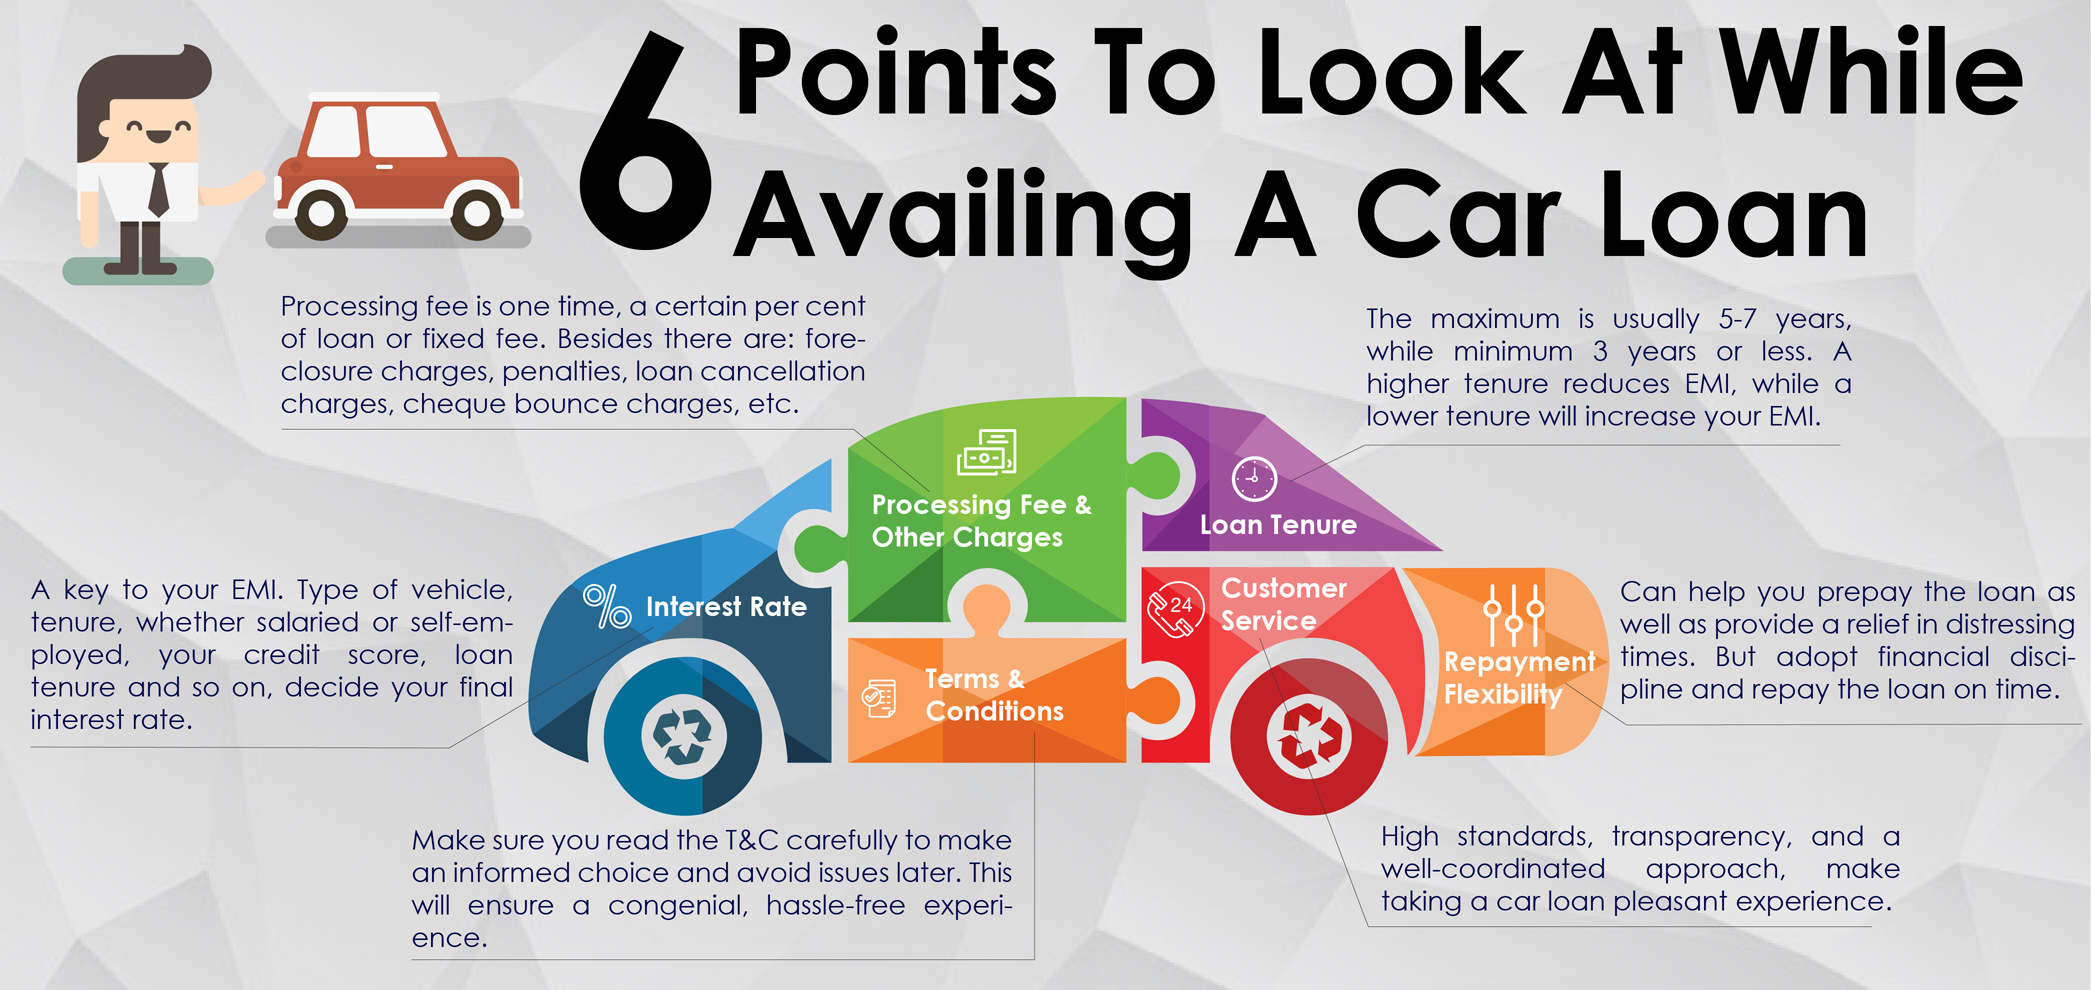 Axis Bank - 6 Points To Look At While Availing A Car Loan